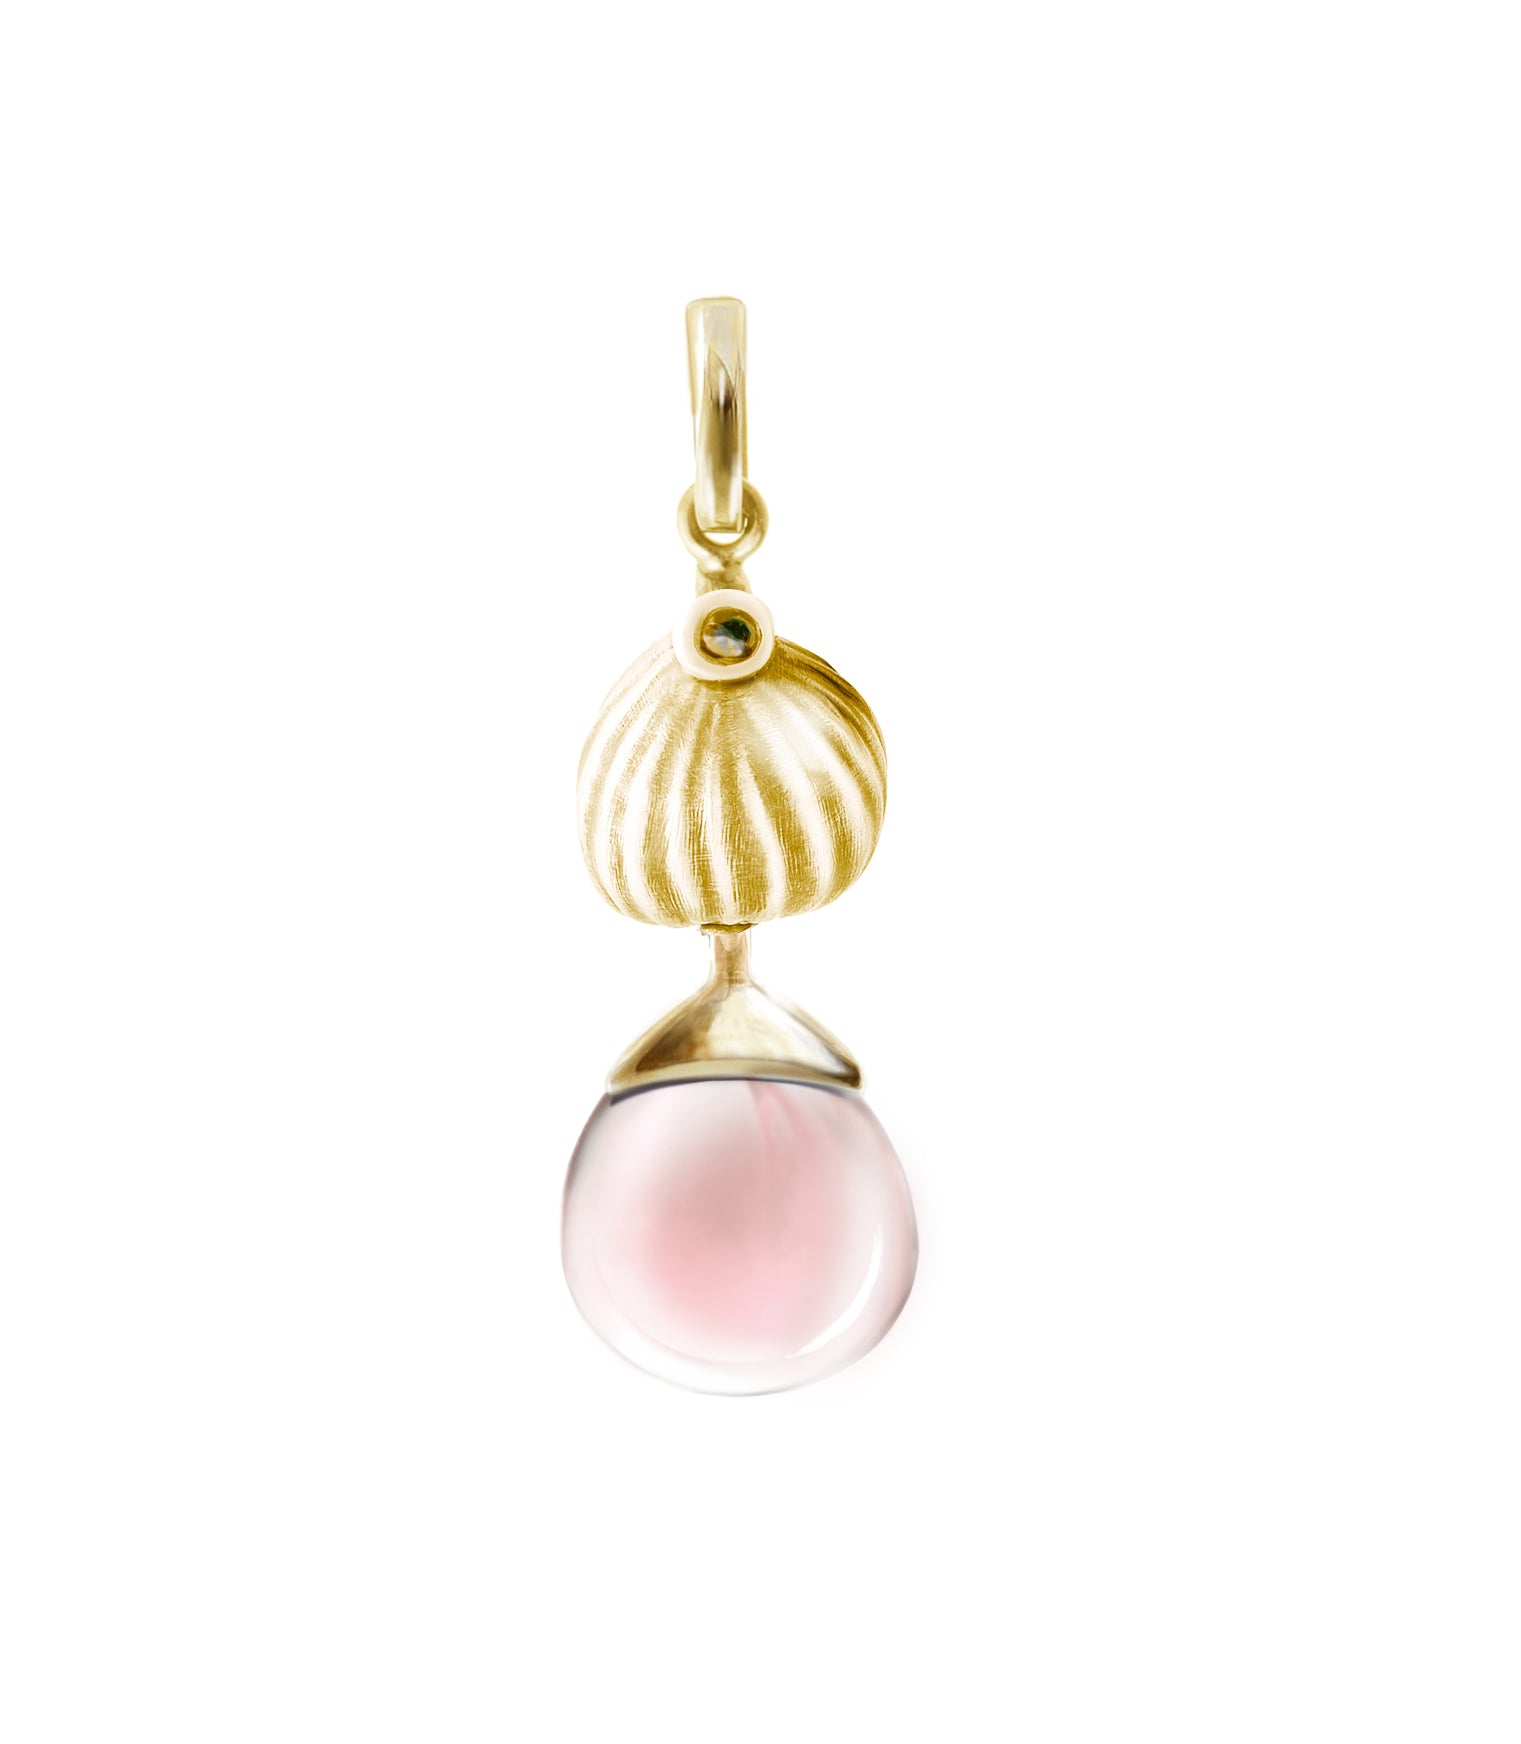 Fig pendant with rose quartz in 18 KT yellow gold